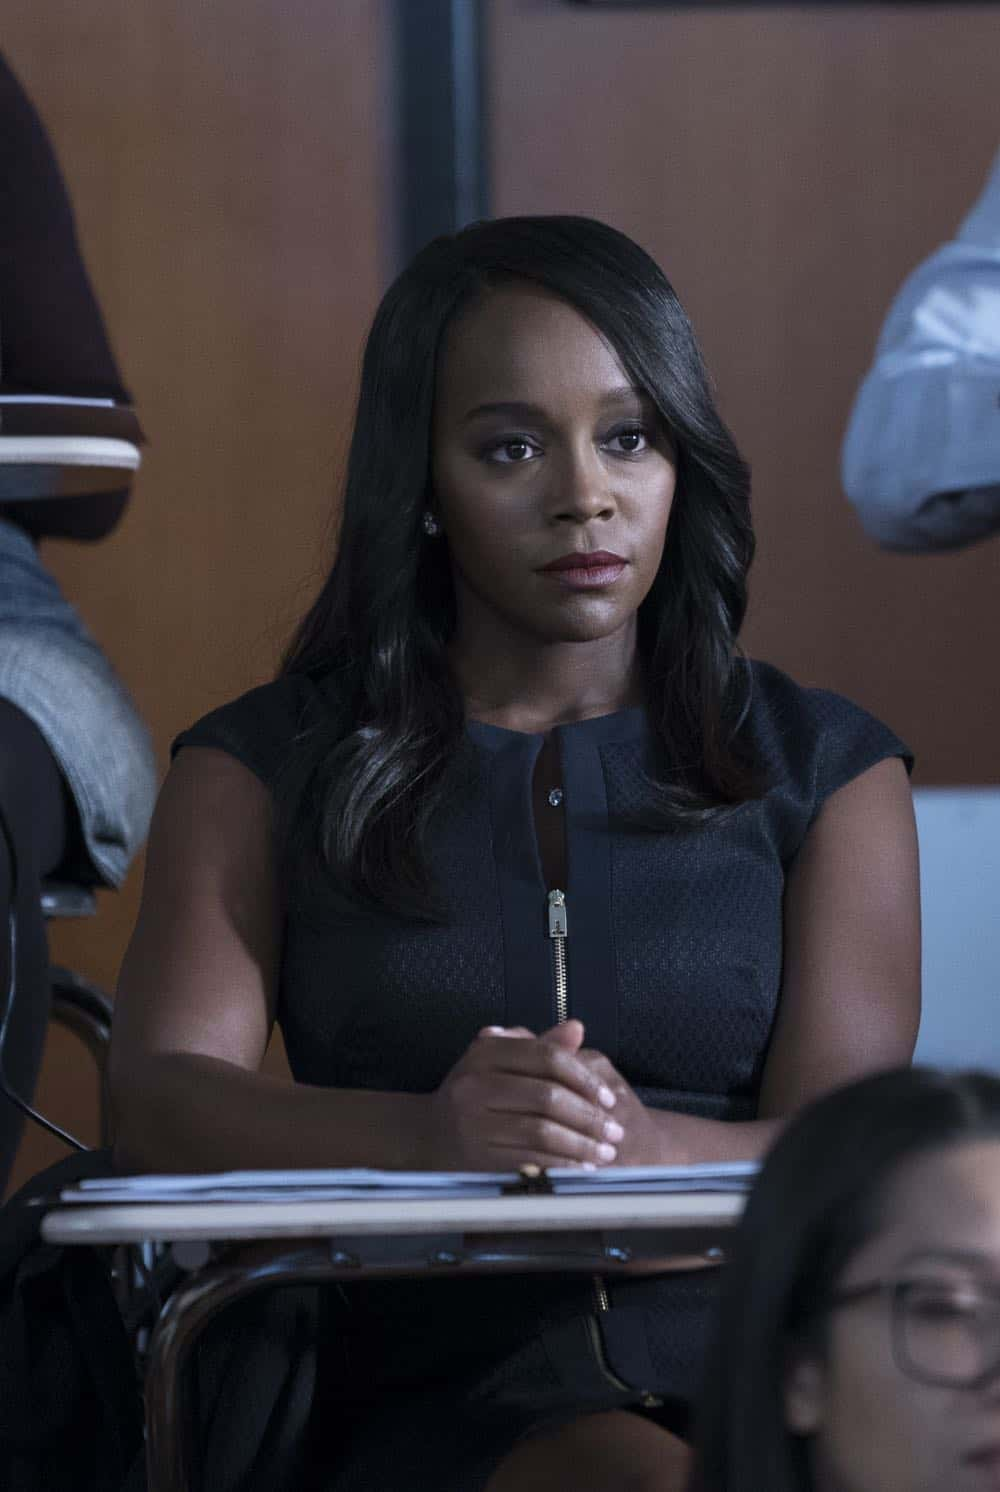 HOW TO GET AWAY WITH MURDER Season 5 Episode 2 Whose Blood Is That 23